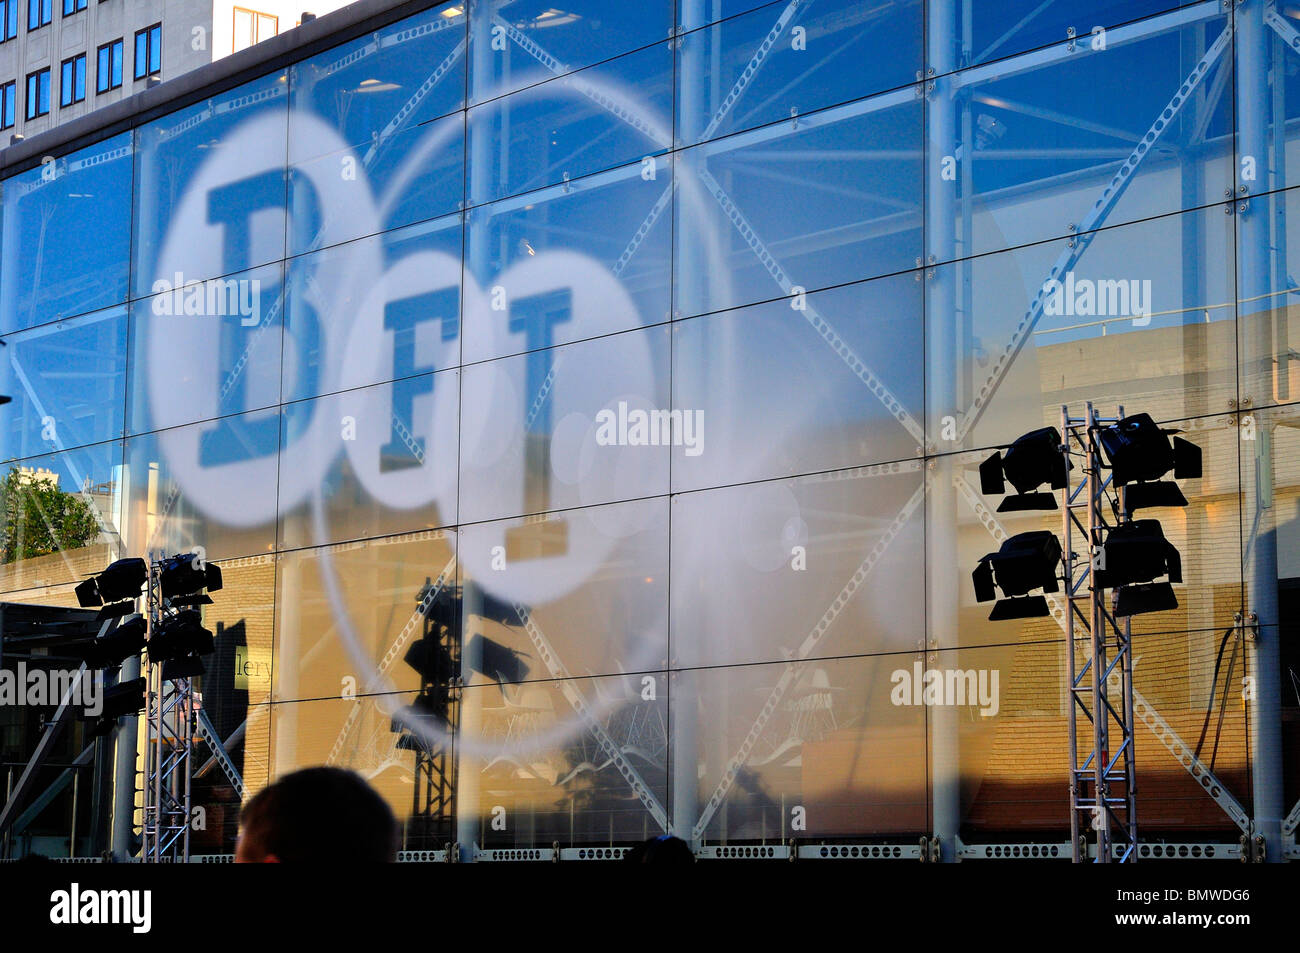 British Film Institute with Lighting rigs outside - Stock Image